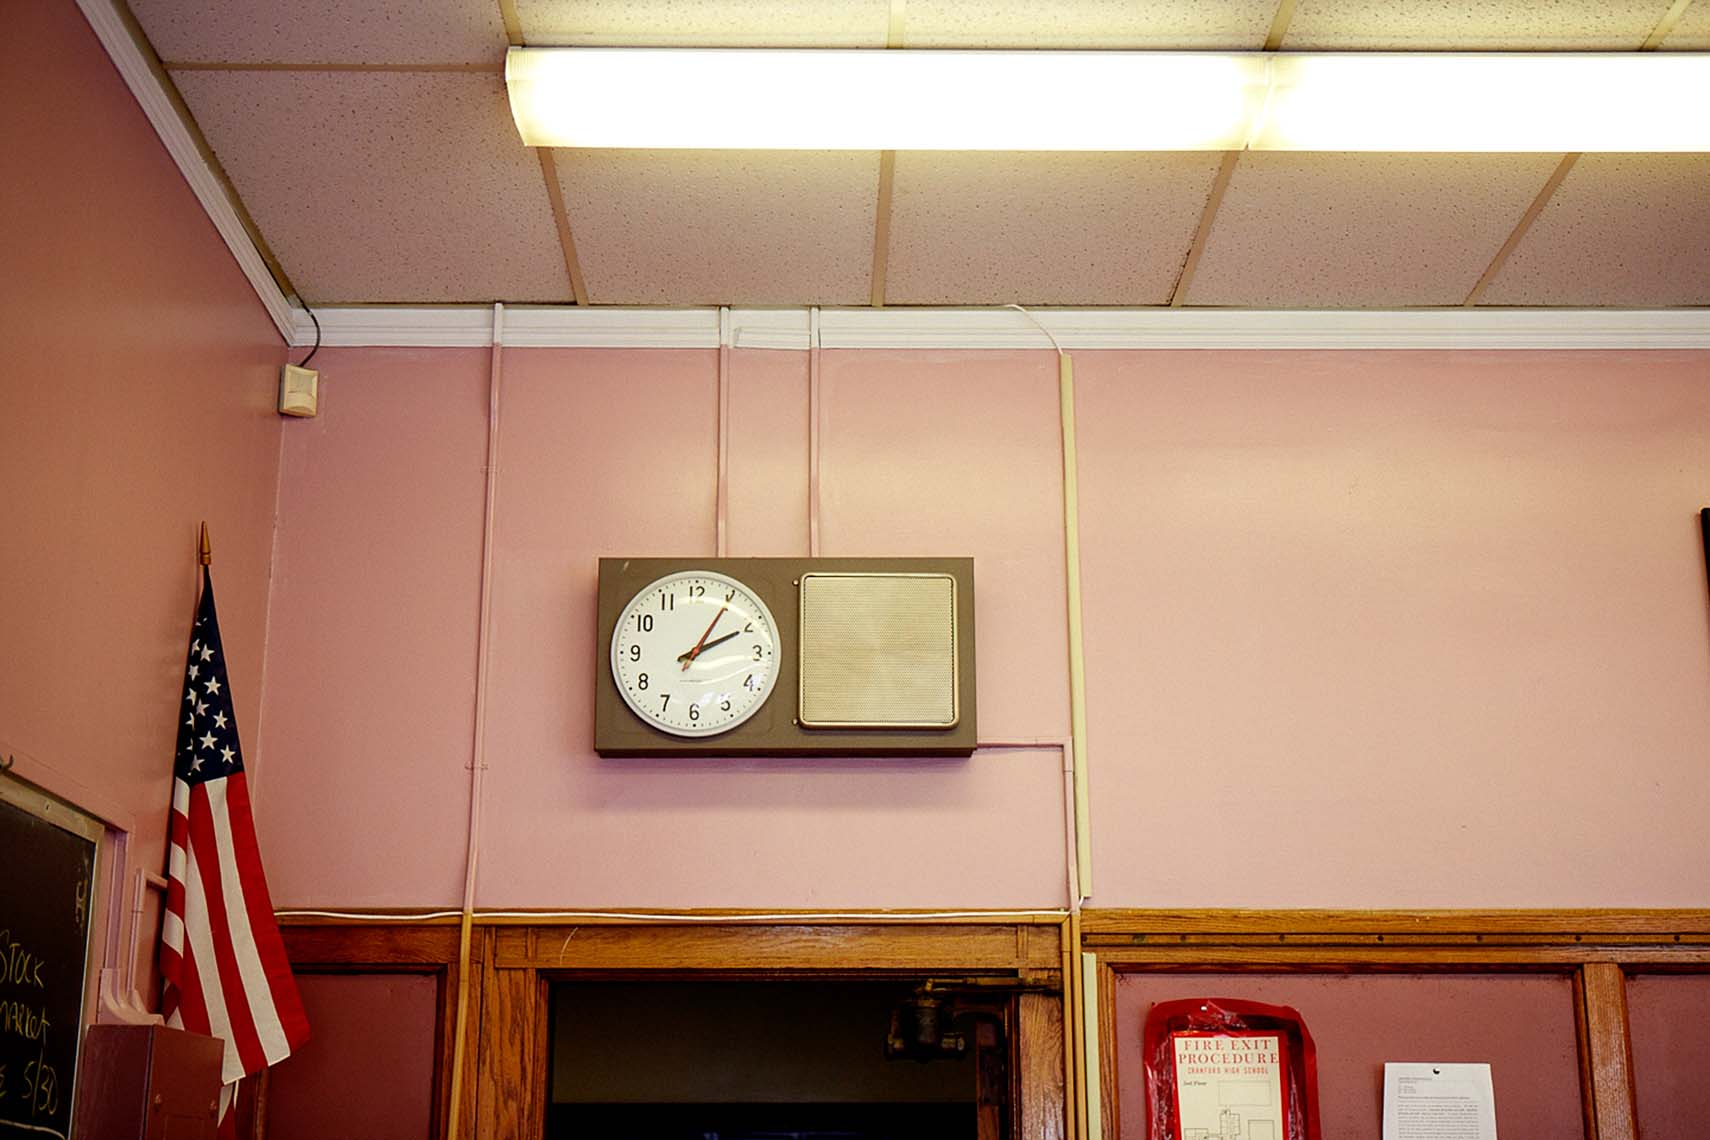 NJ High School classroom clock